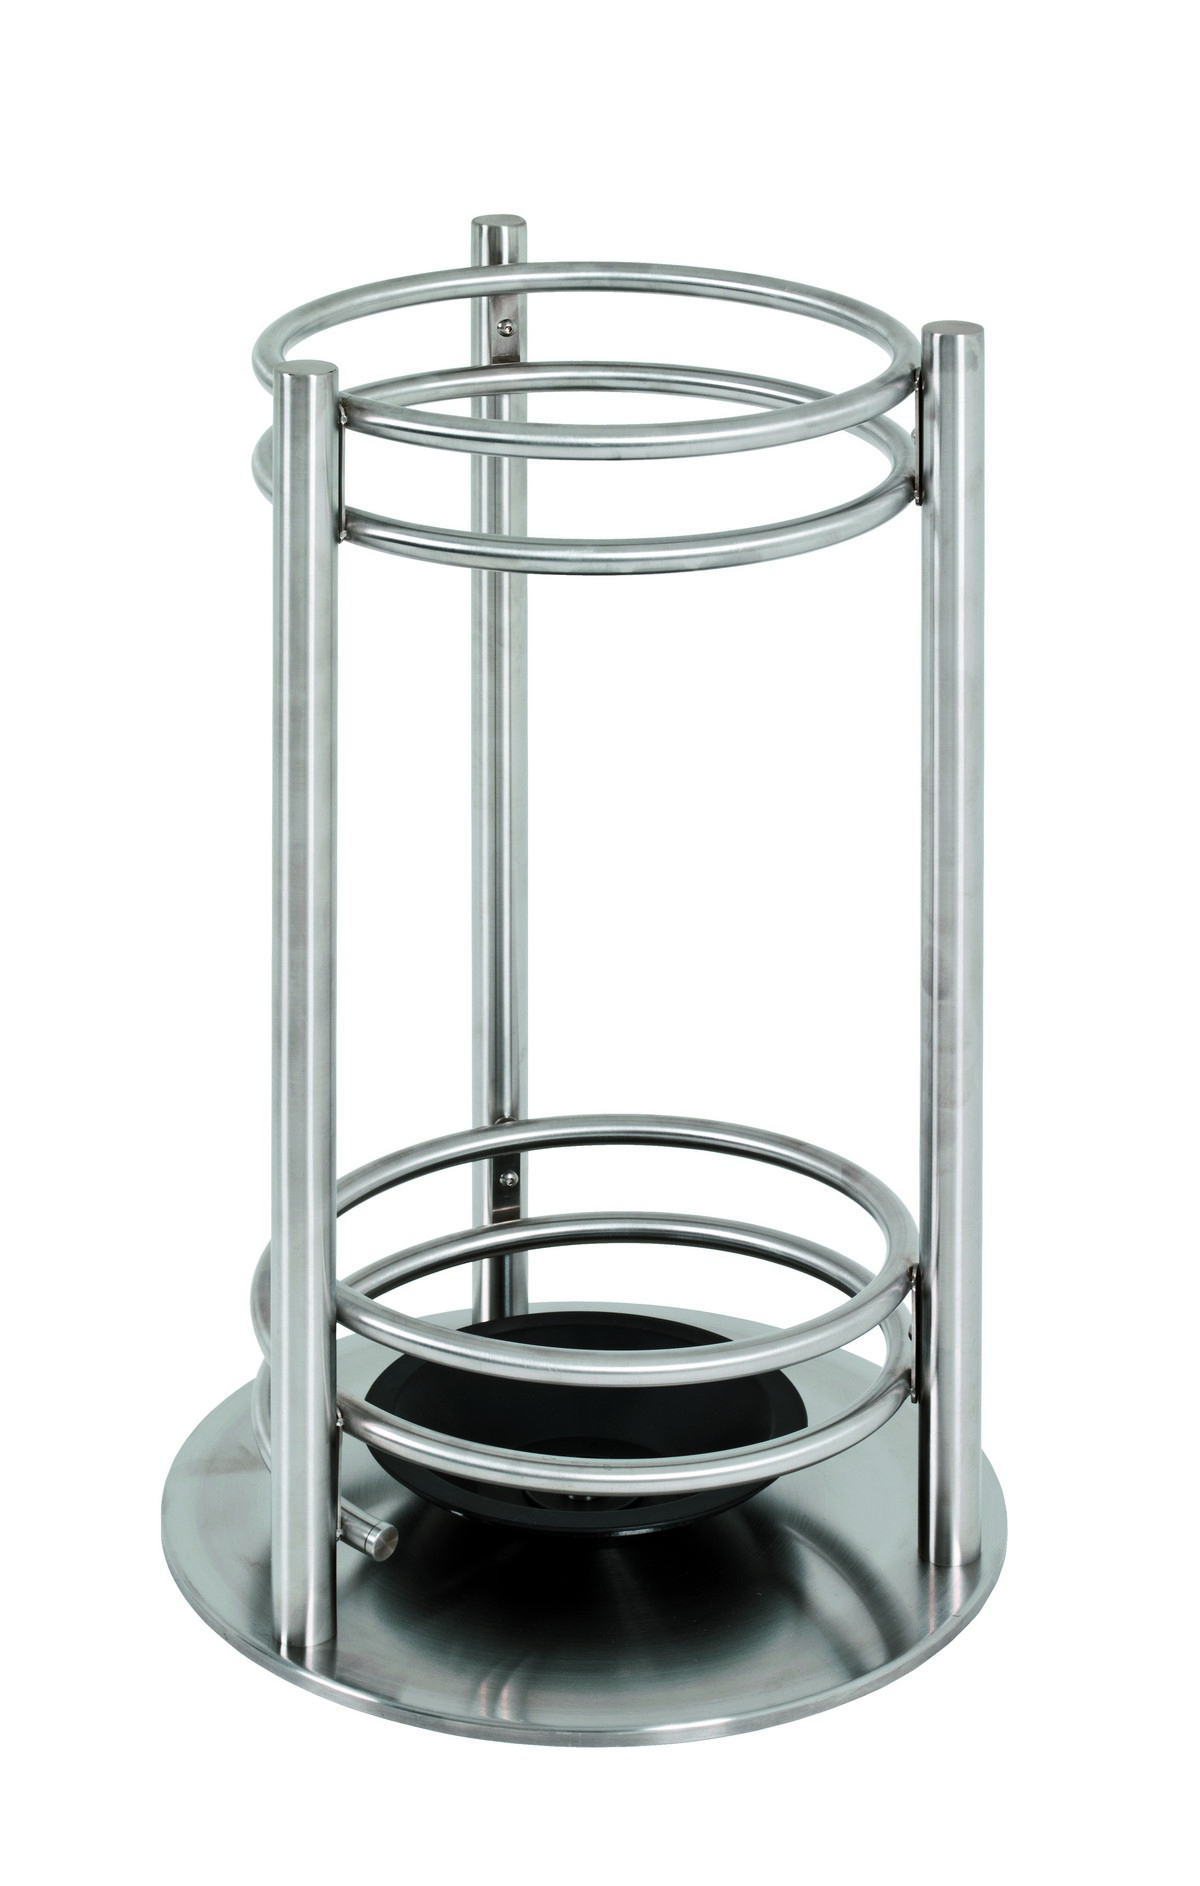 Santiago Stainless Steel Umbrella Stand Intended For Santiago Tv Stands (View 8 of 15)